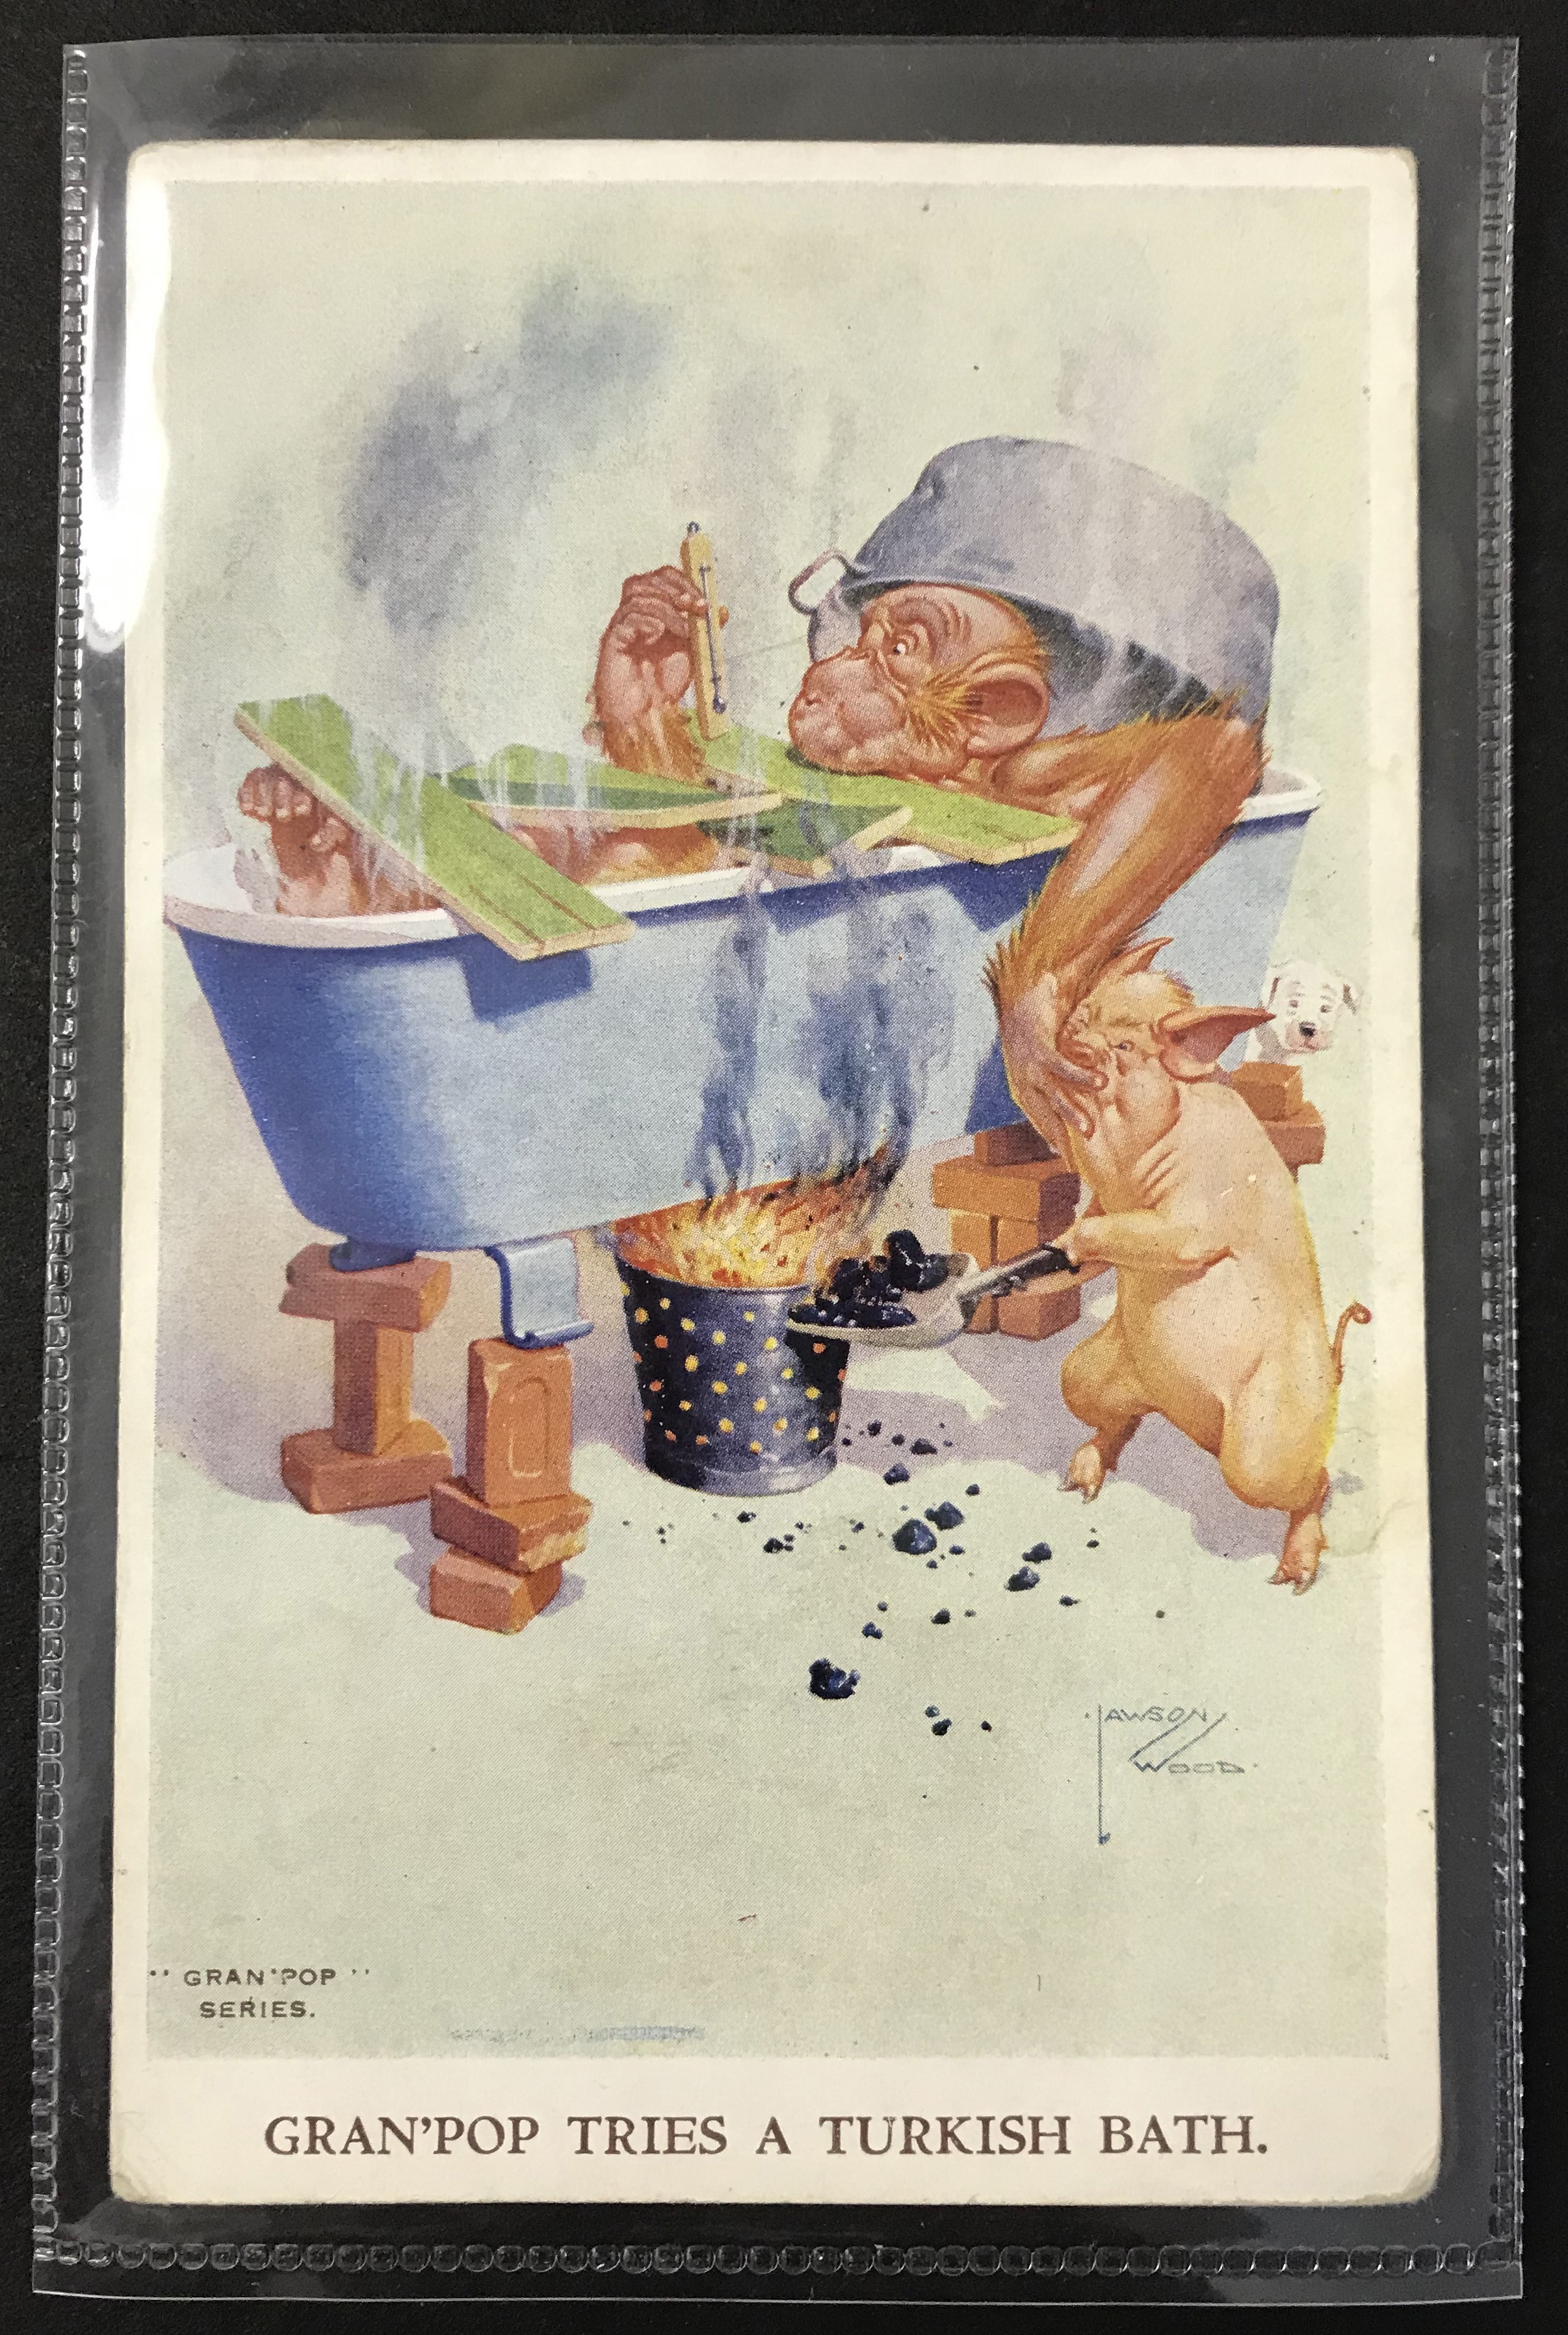 SMALL GROUP OF LAWSON WOOD POSTCARDS FROM GRAN POP SERIES - Image 3 of 11